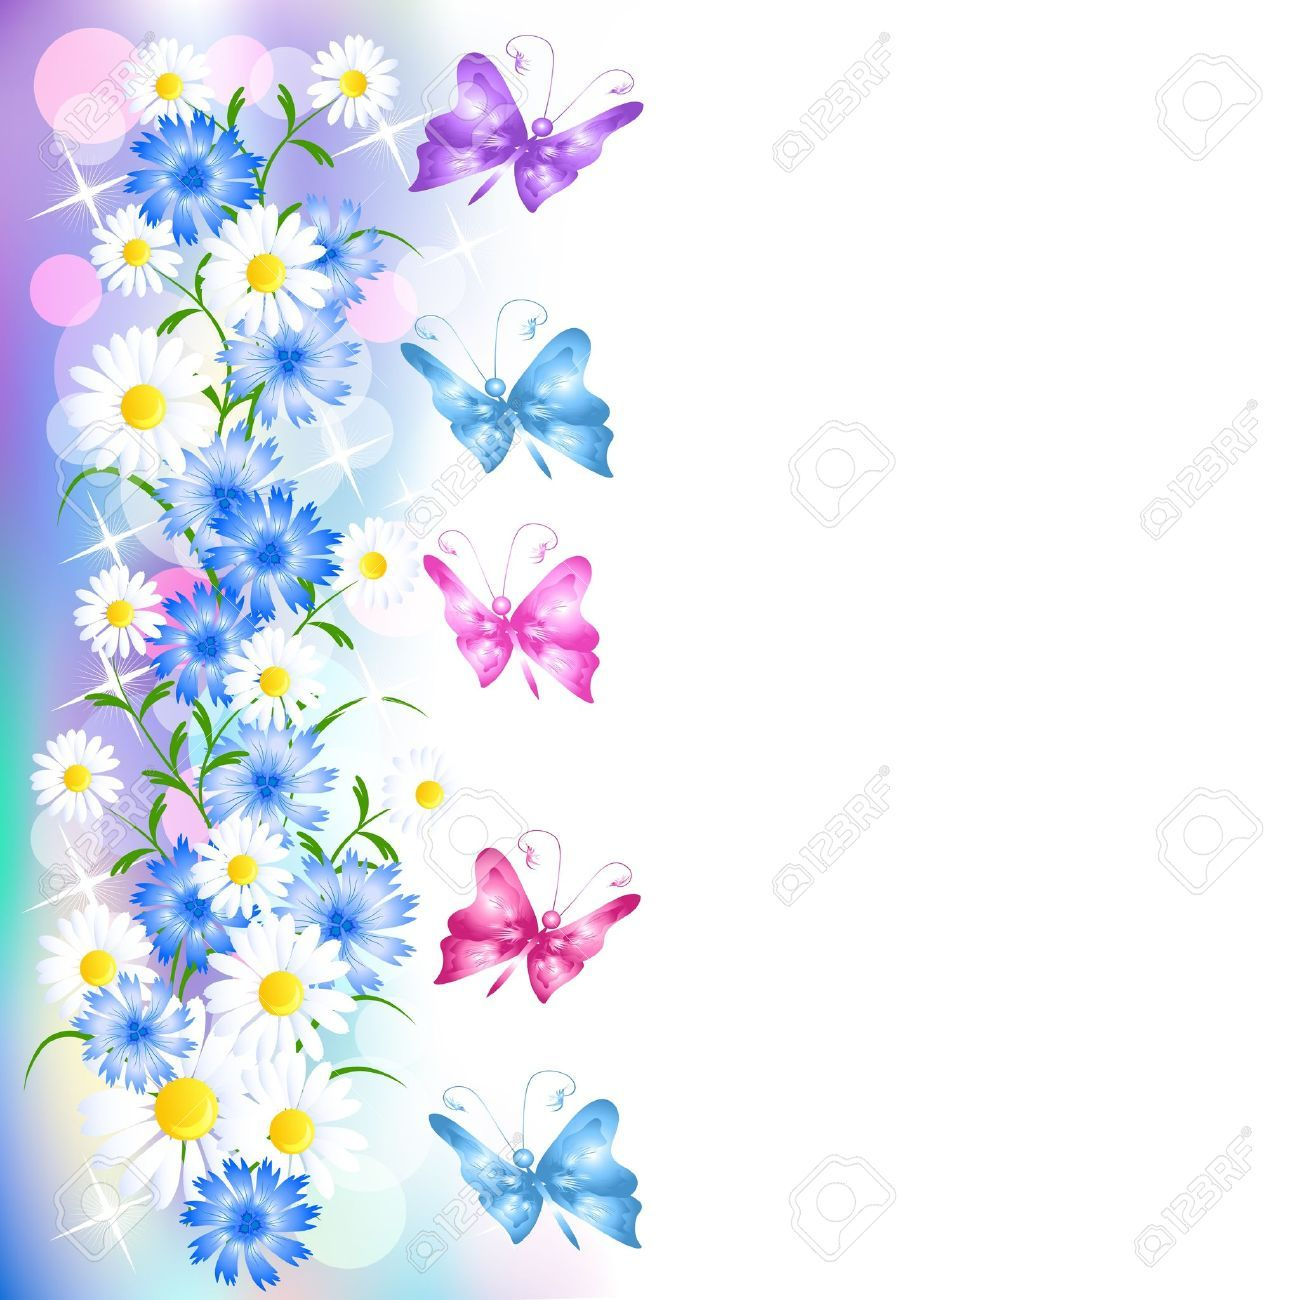 Flower and butterfly border clip art - photo#53